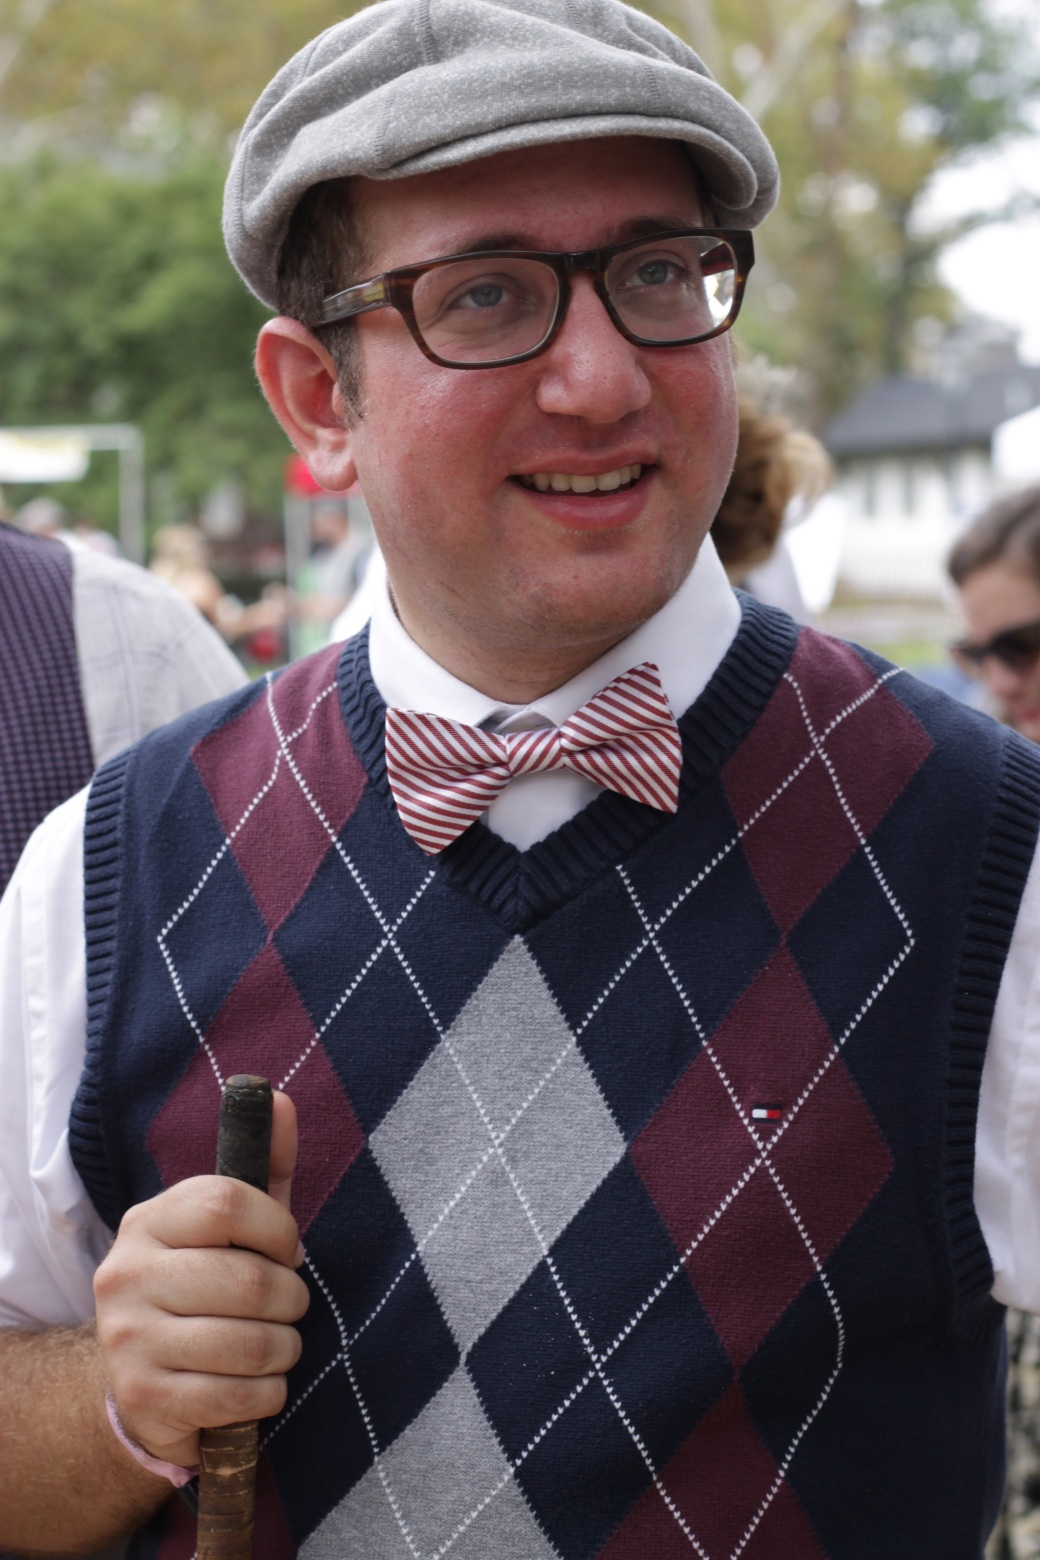 new york city governors island jazz age lawn party august 17 2014 62